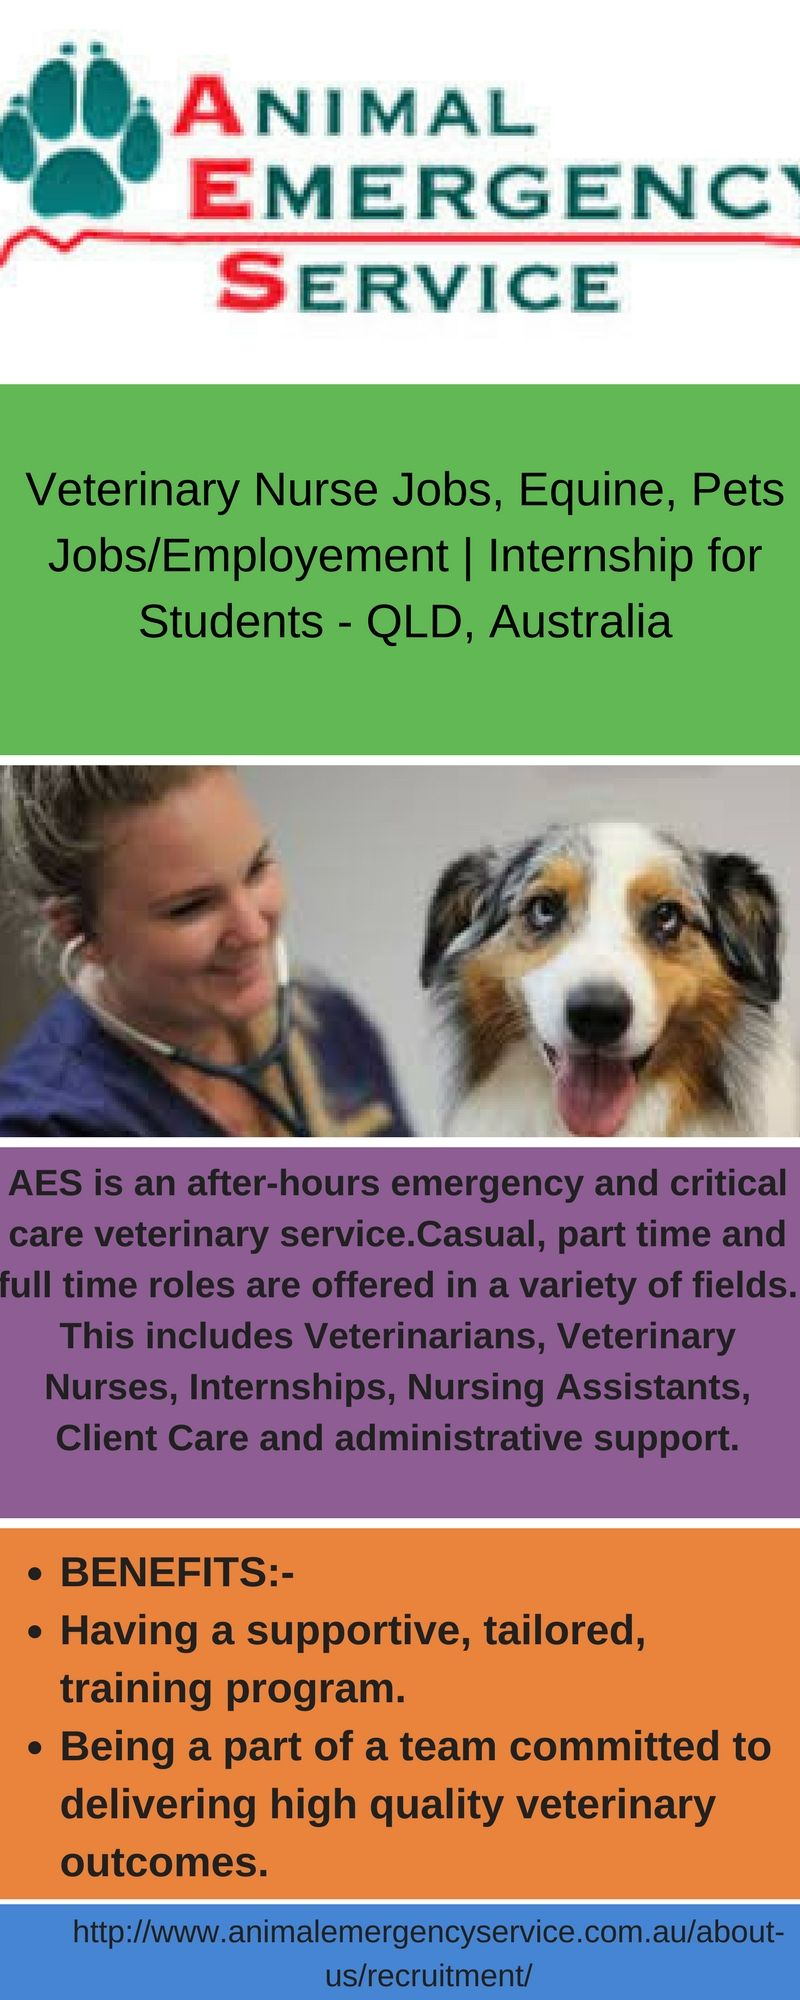 Aes Is An After Hours Emergency And Critical Care Veterinary Service Due To The Nature Of The Business Most Posi Veterinary Services Nursing Jobs Critical Care